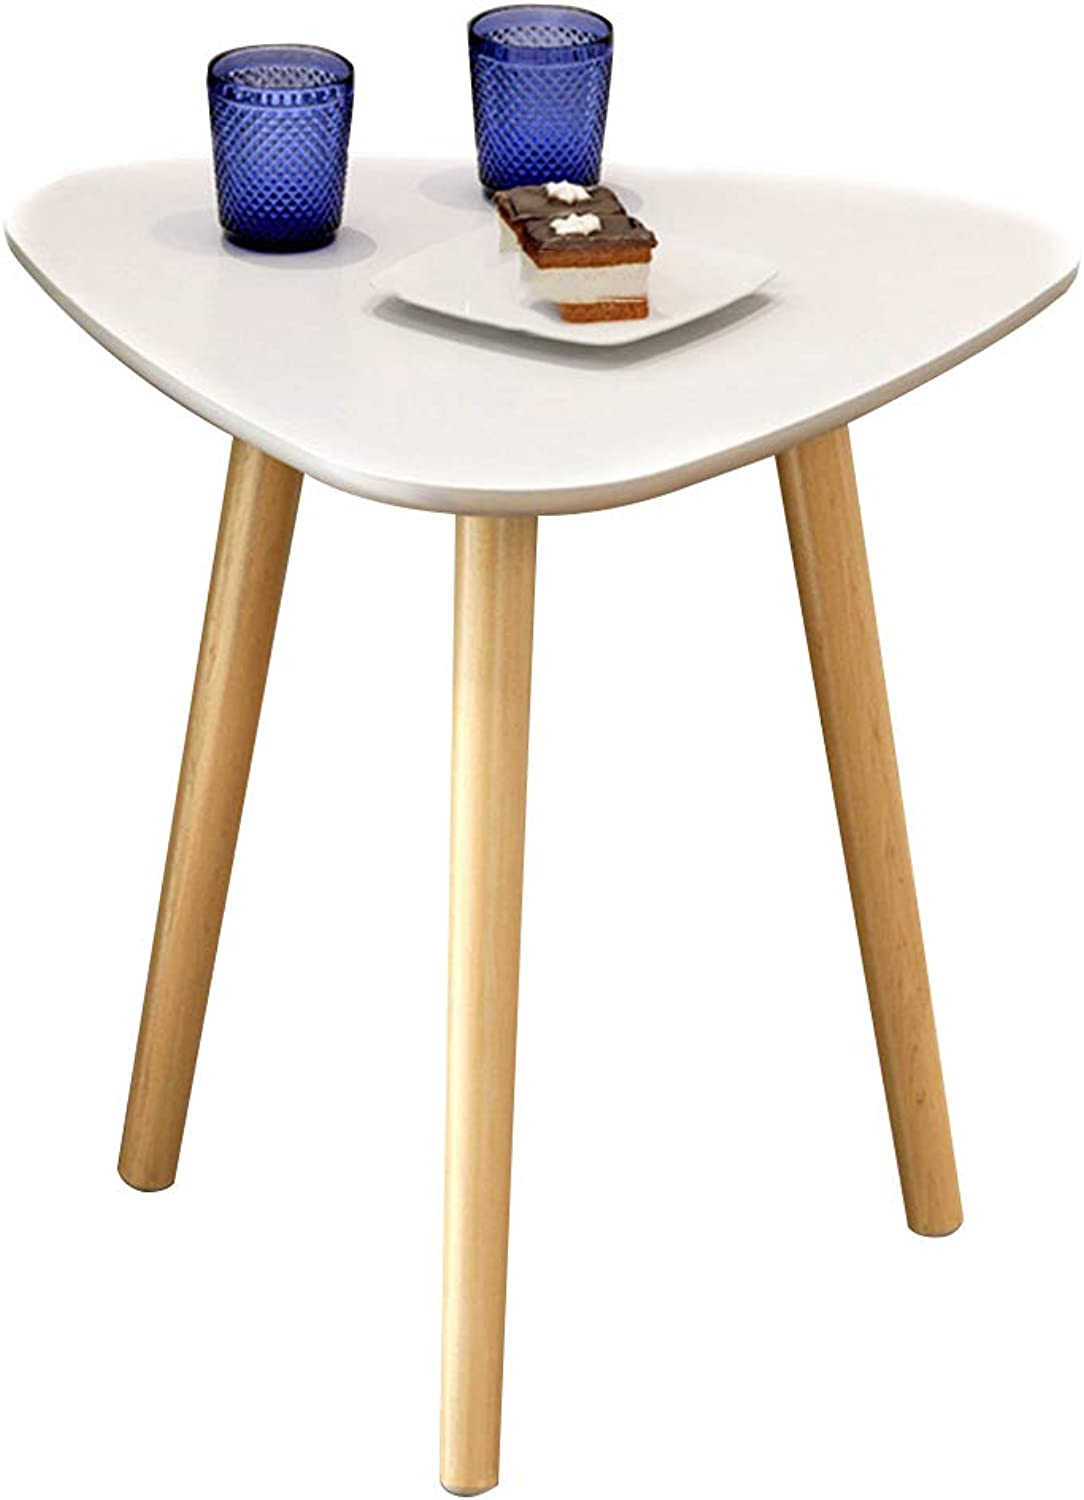 Coffee Table Solid Wood Coffee Table, Simple Corner Table, Suitable for Small Apartment Living Room Sofa Side 4 Size (Size   35  35  42cm)